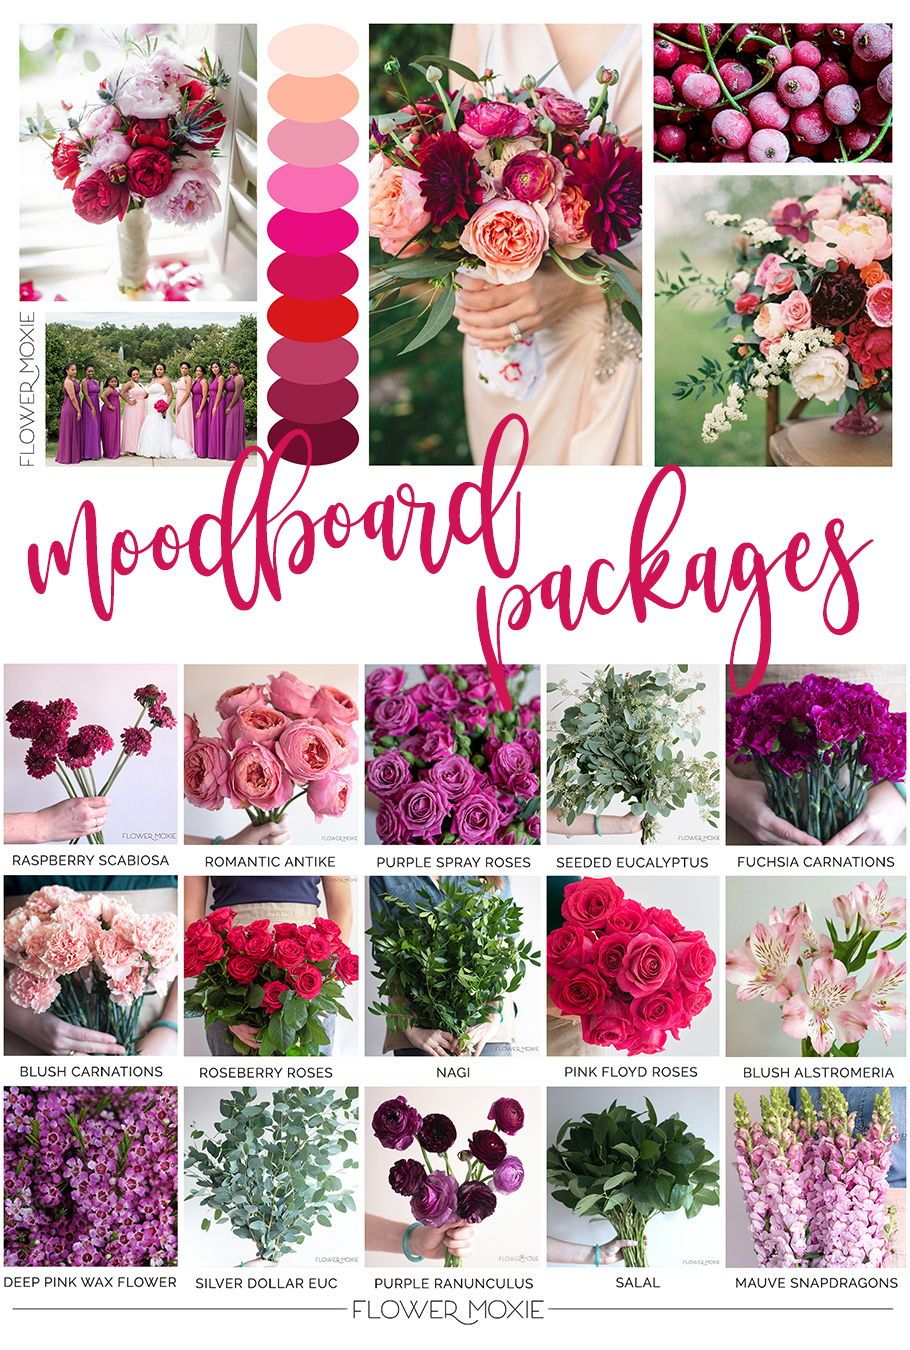 Get Inspired By Our Wedding Flower Packages Mix Match Flowers To Achieve The Loo Affordable Wedding Flowers Online Wedding Flowers Wholesale Flowers Wedding